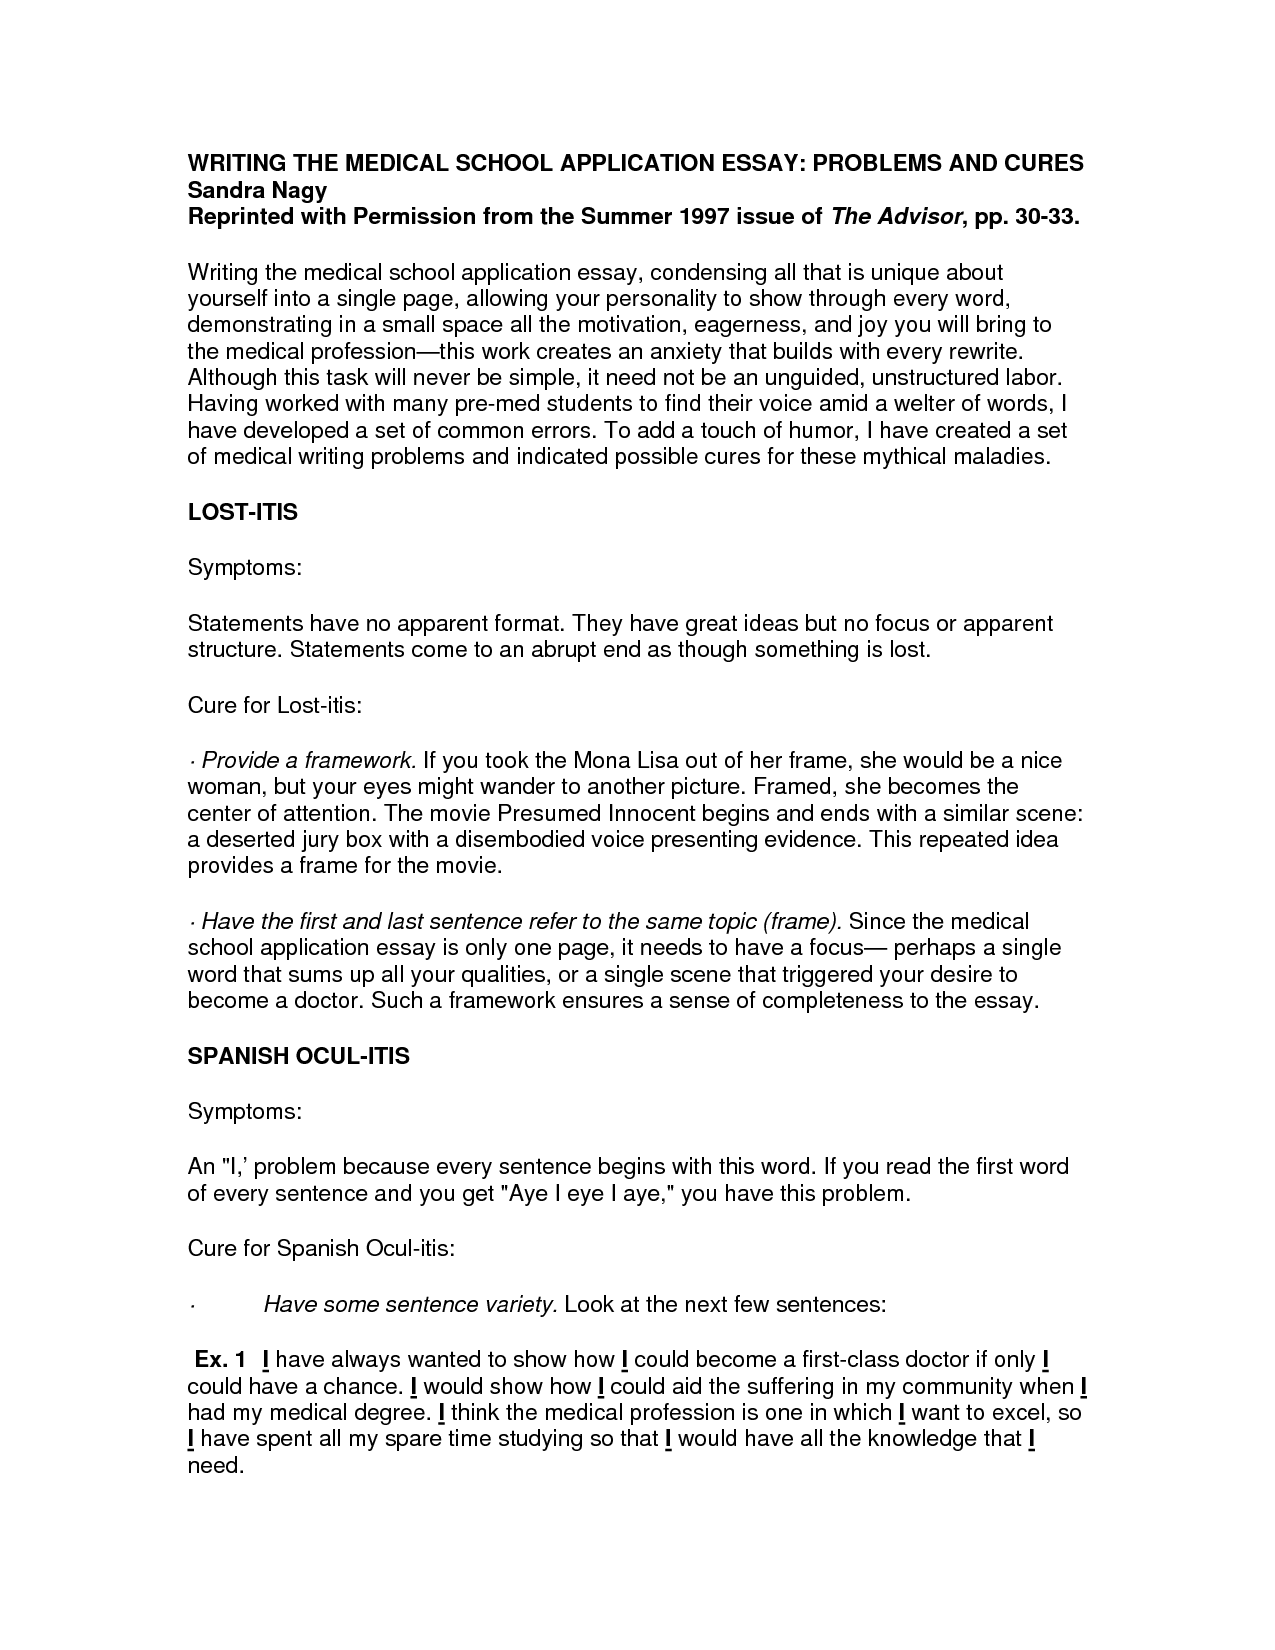 case analysis ockham technology View notes - case # 4- ockham technologies from mgmt 335 at oregon ockham technologies case notes context company specializing in creating sma (sales management.